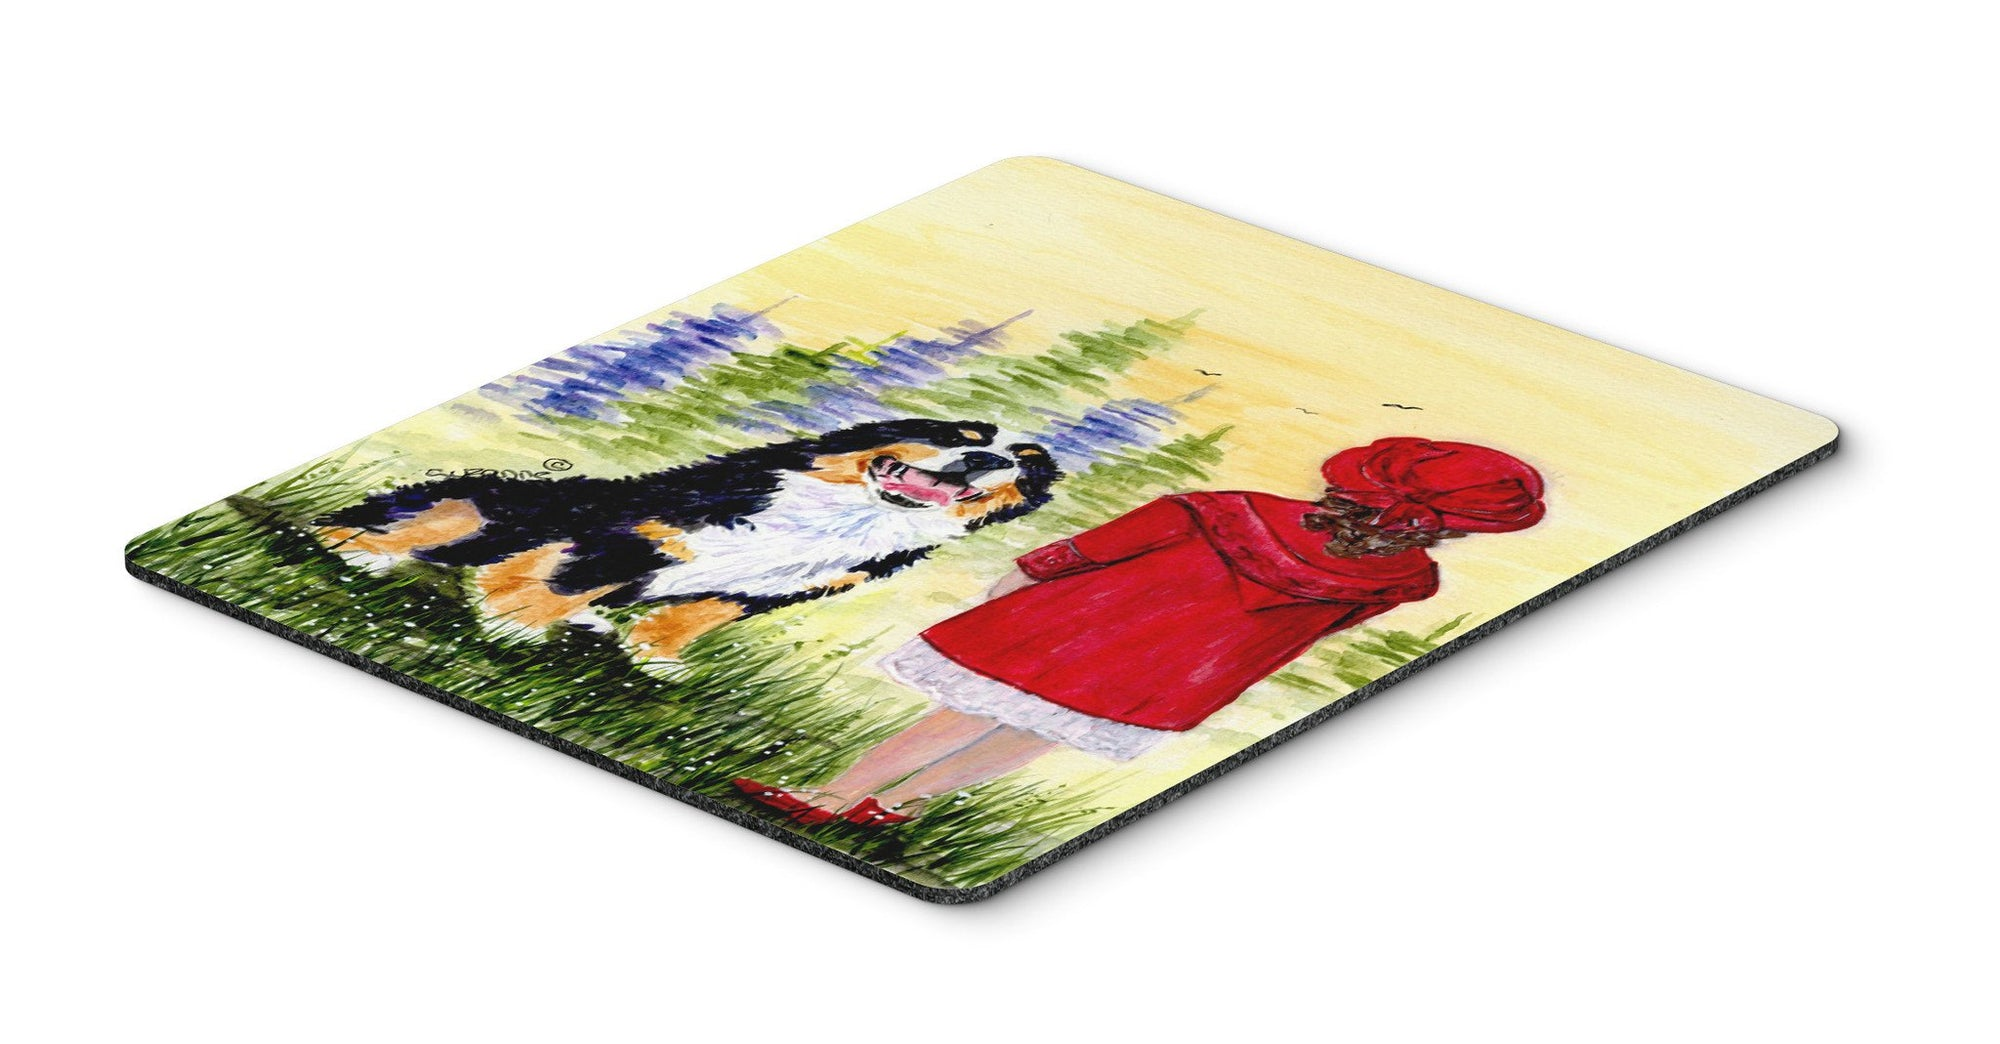 Buy this Little Girl with her Bernese Mountain Dog Mouse Pad, Hot Pad or Trivet